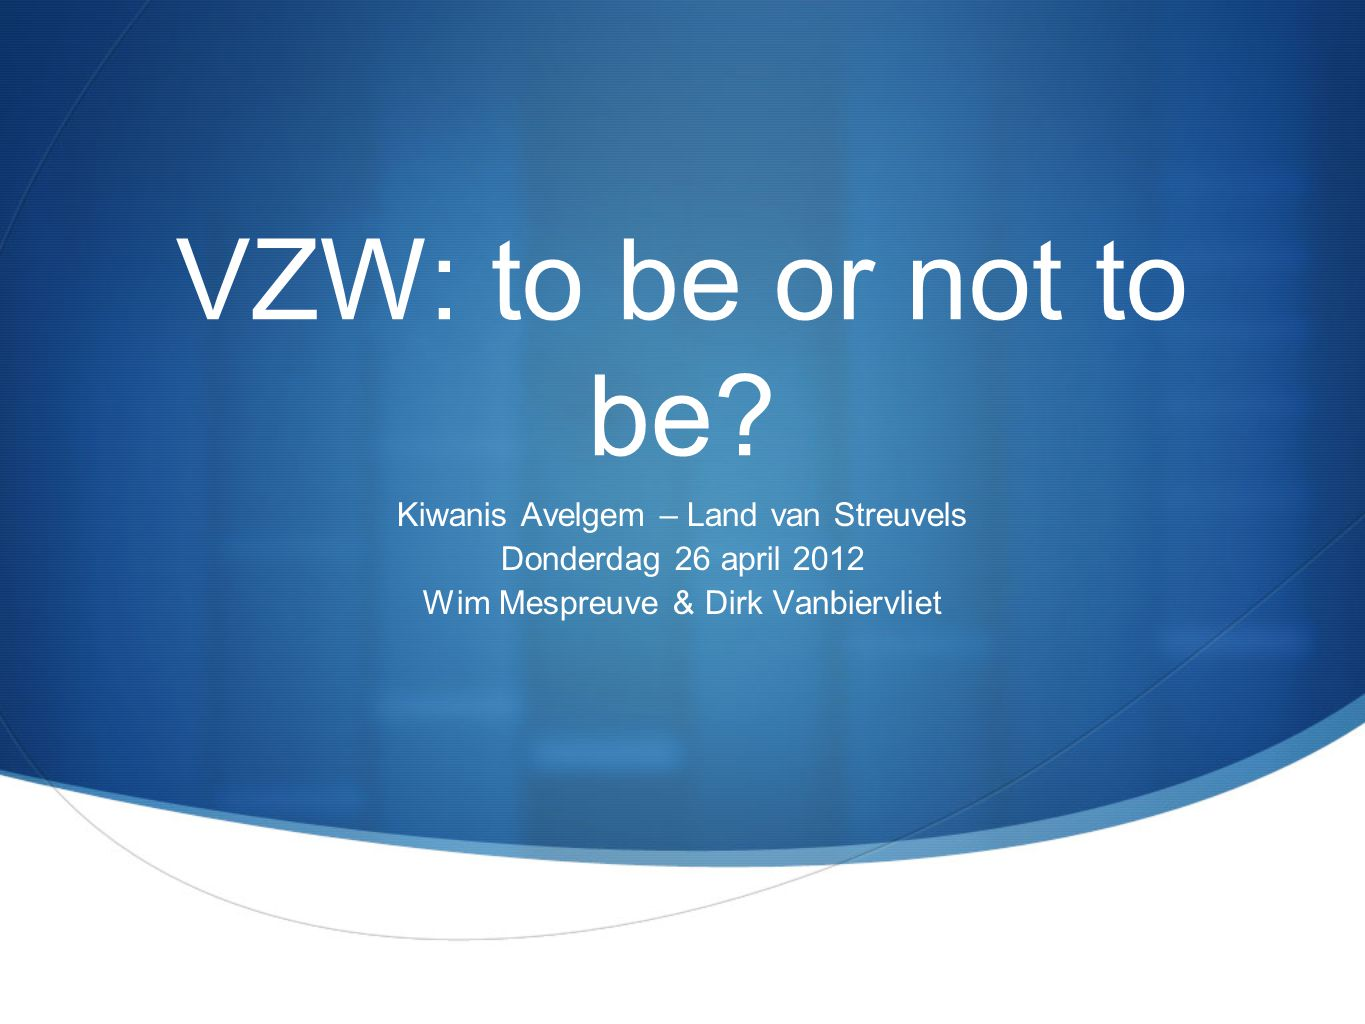 VZW: to be or not to be Kiwanis Avelgem – Land van Streuvels